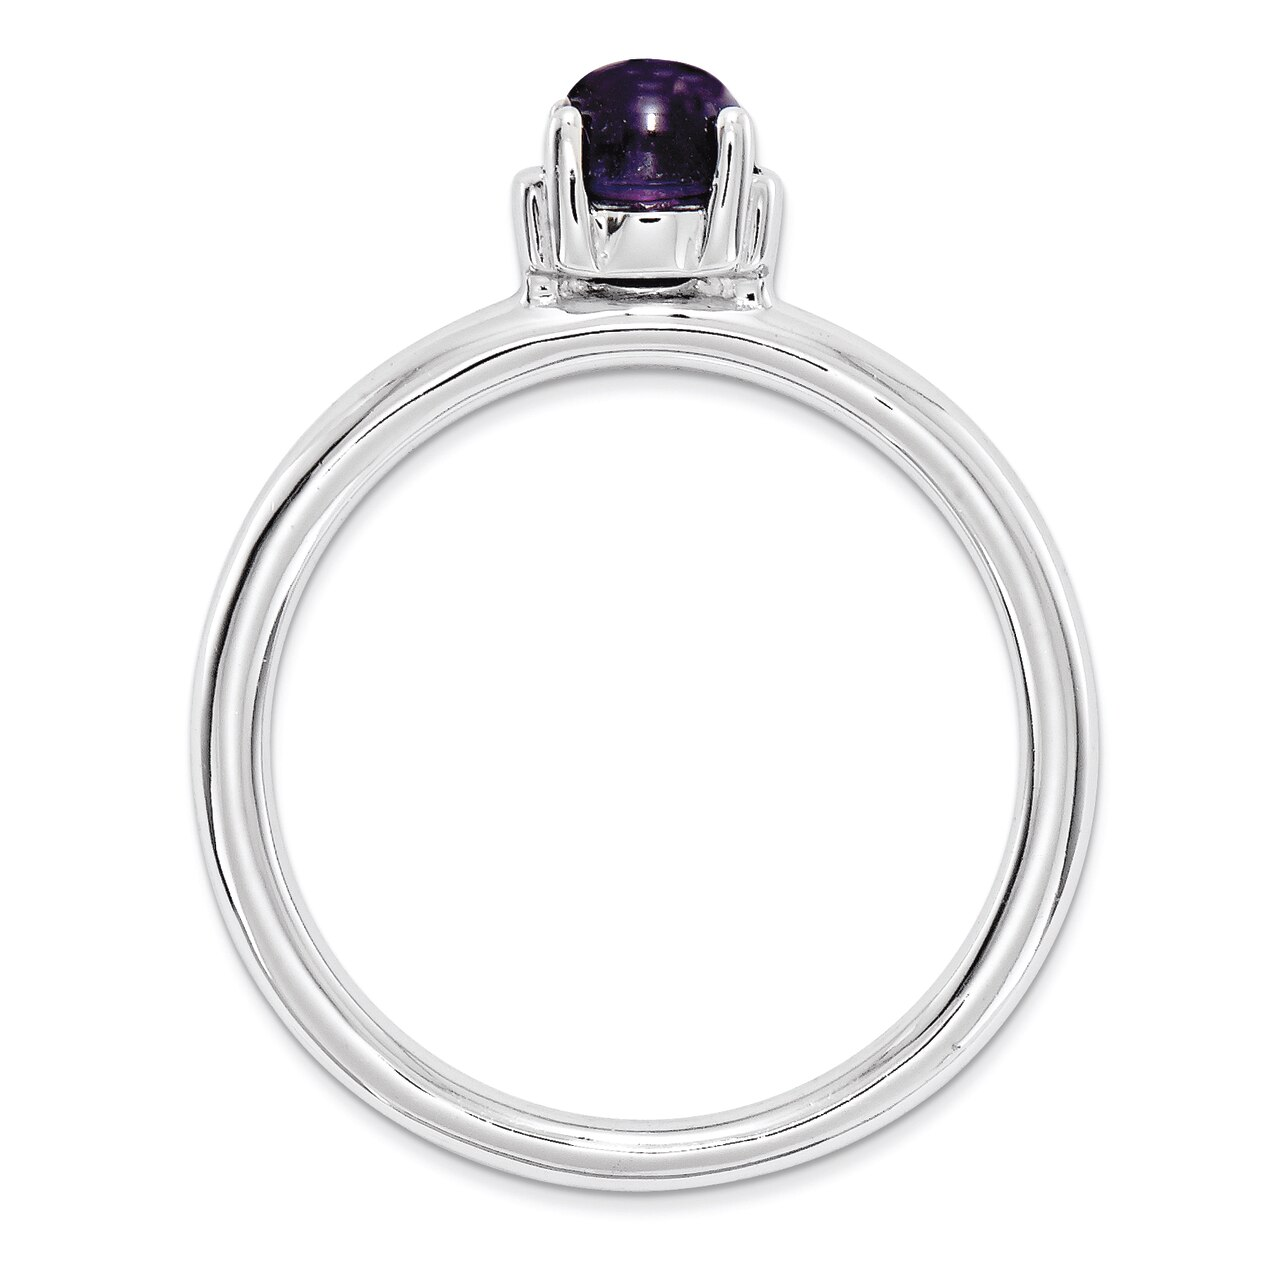 Details about  /Sterling Silver 4 MM 925 and Gold-tone Accents Amethyst and Diamond Ring